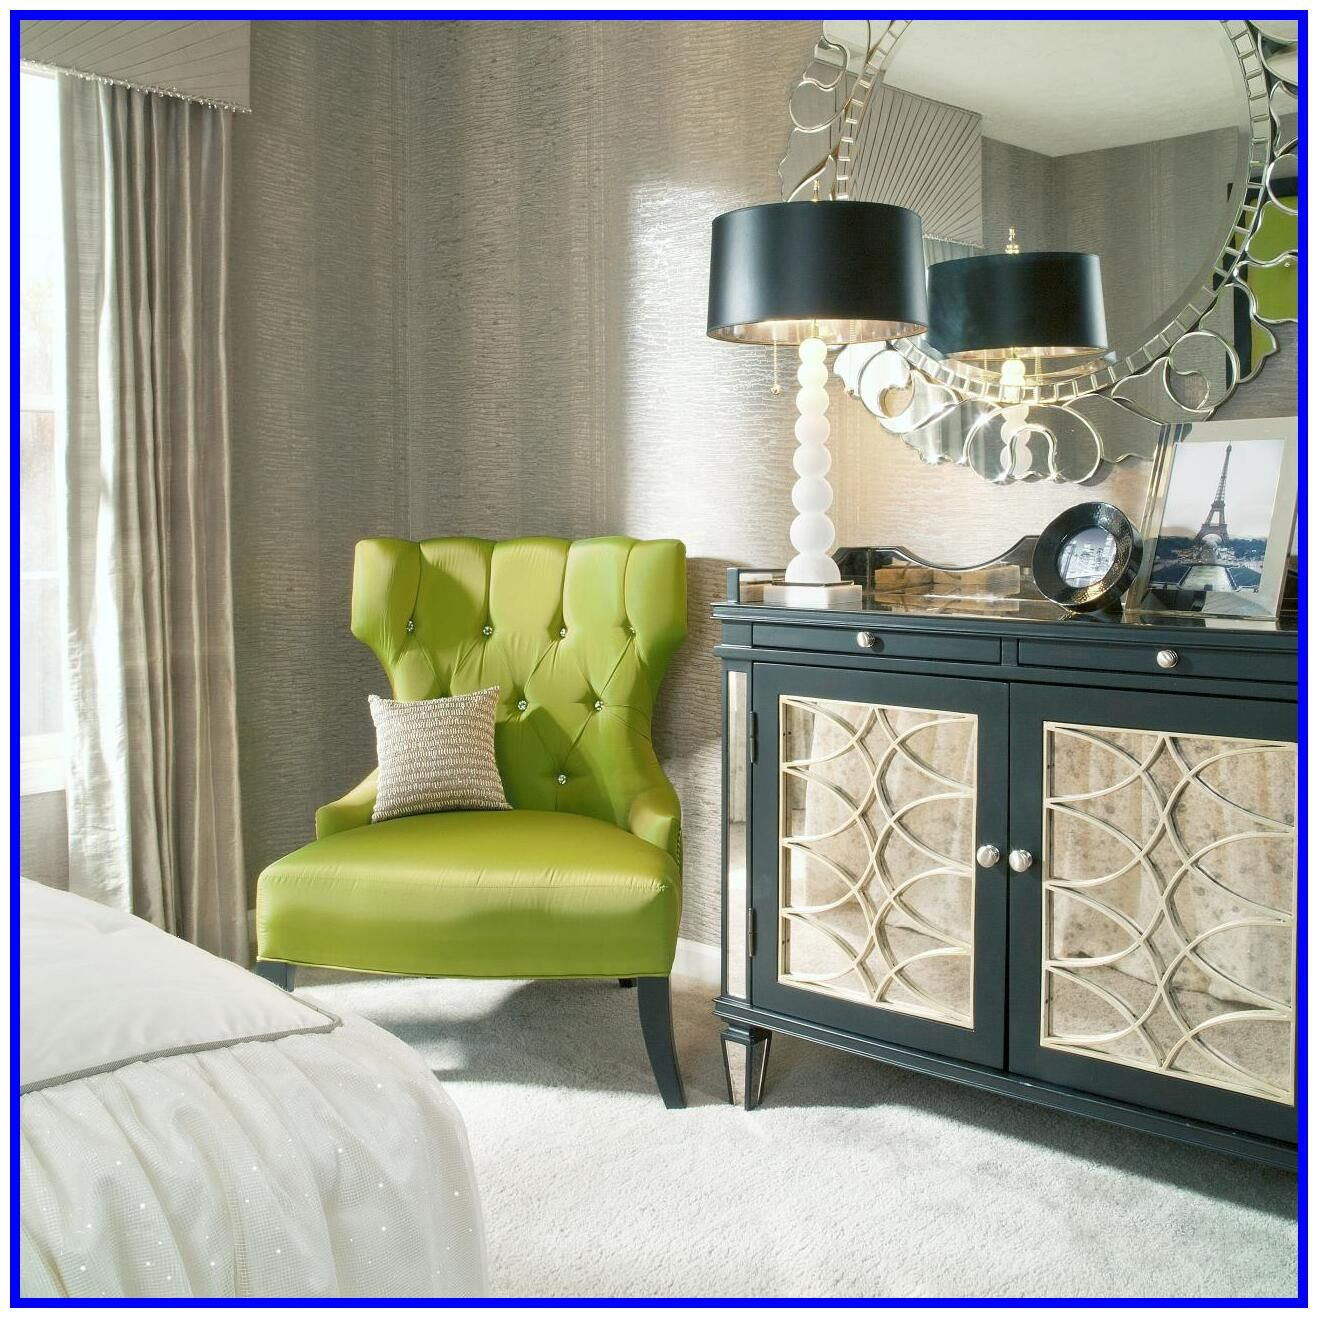 4 reference of chair Green room in 4  Home decor, Green